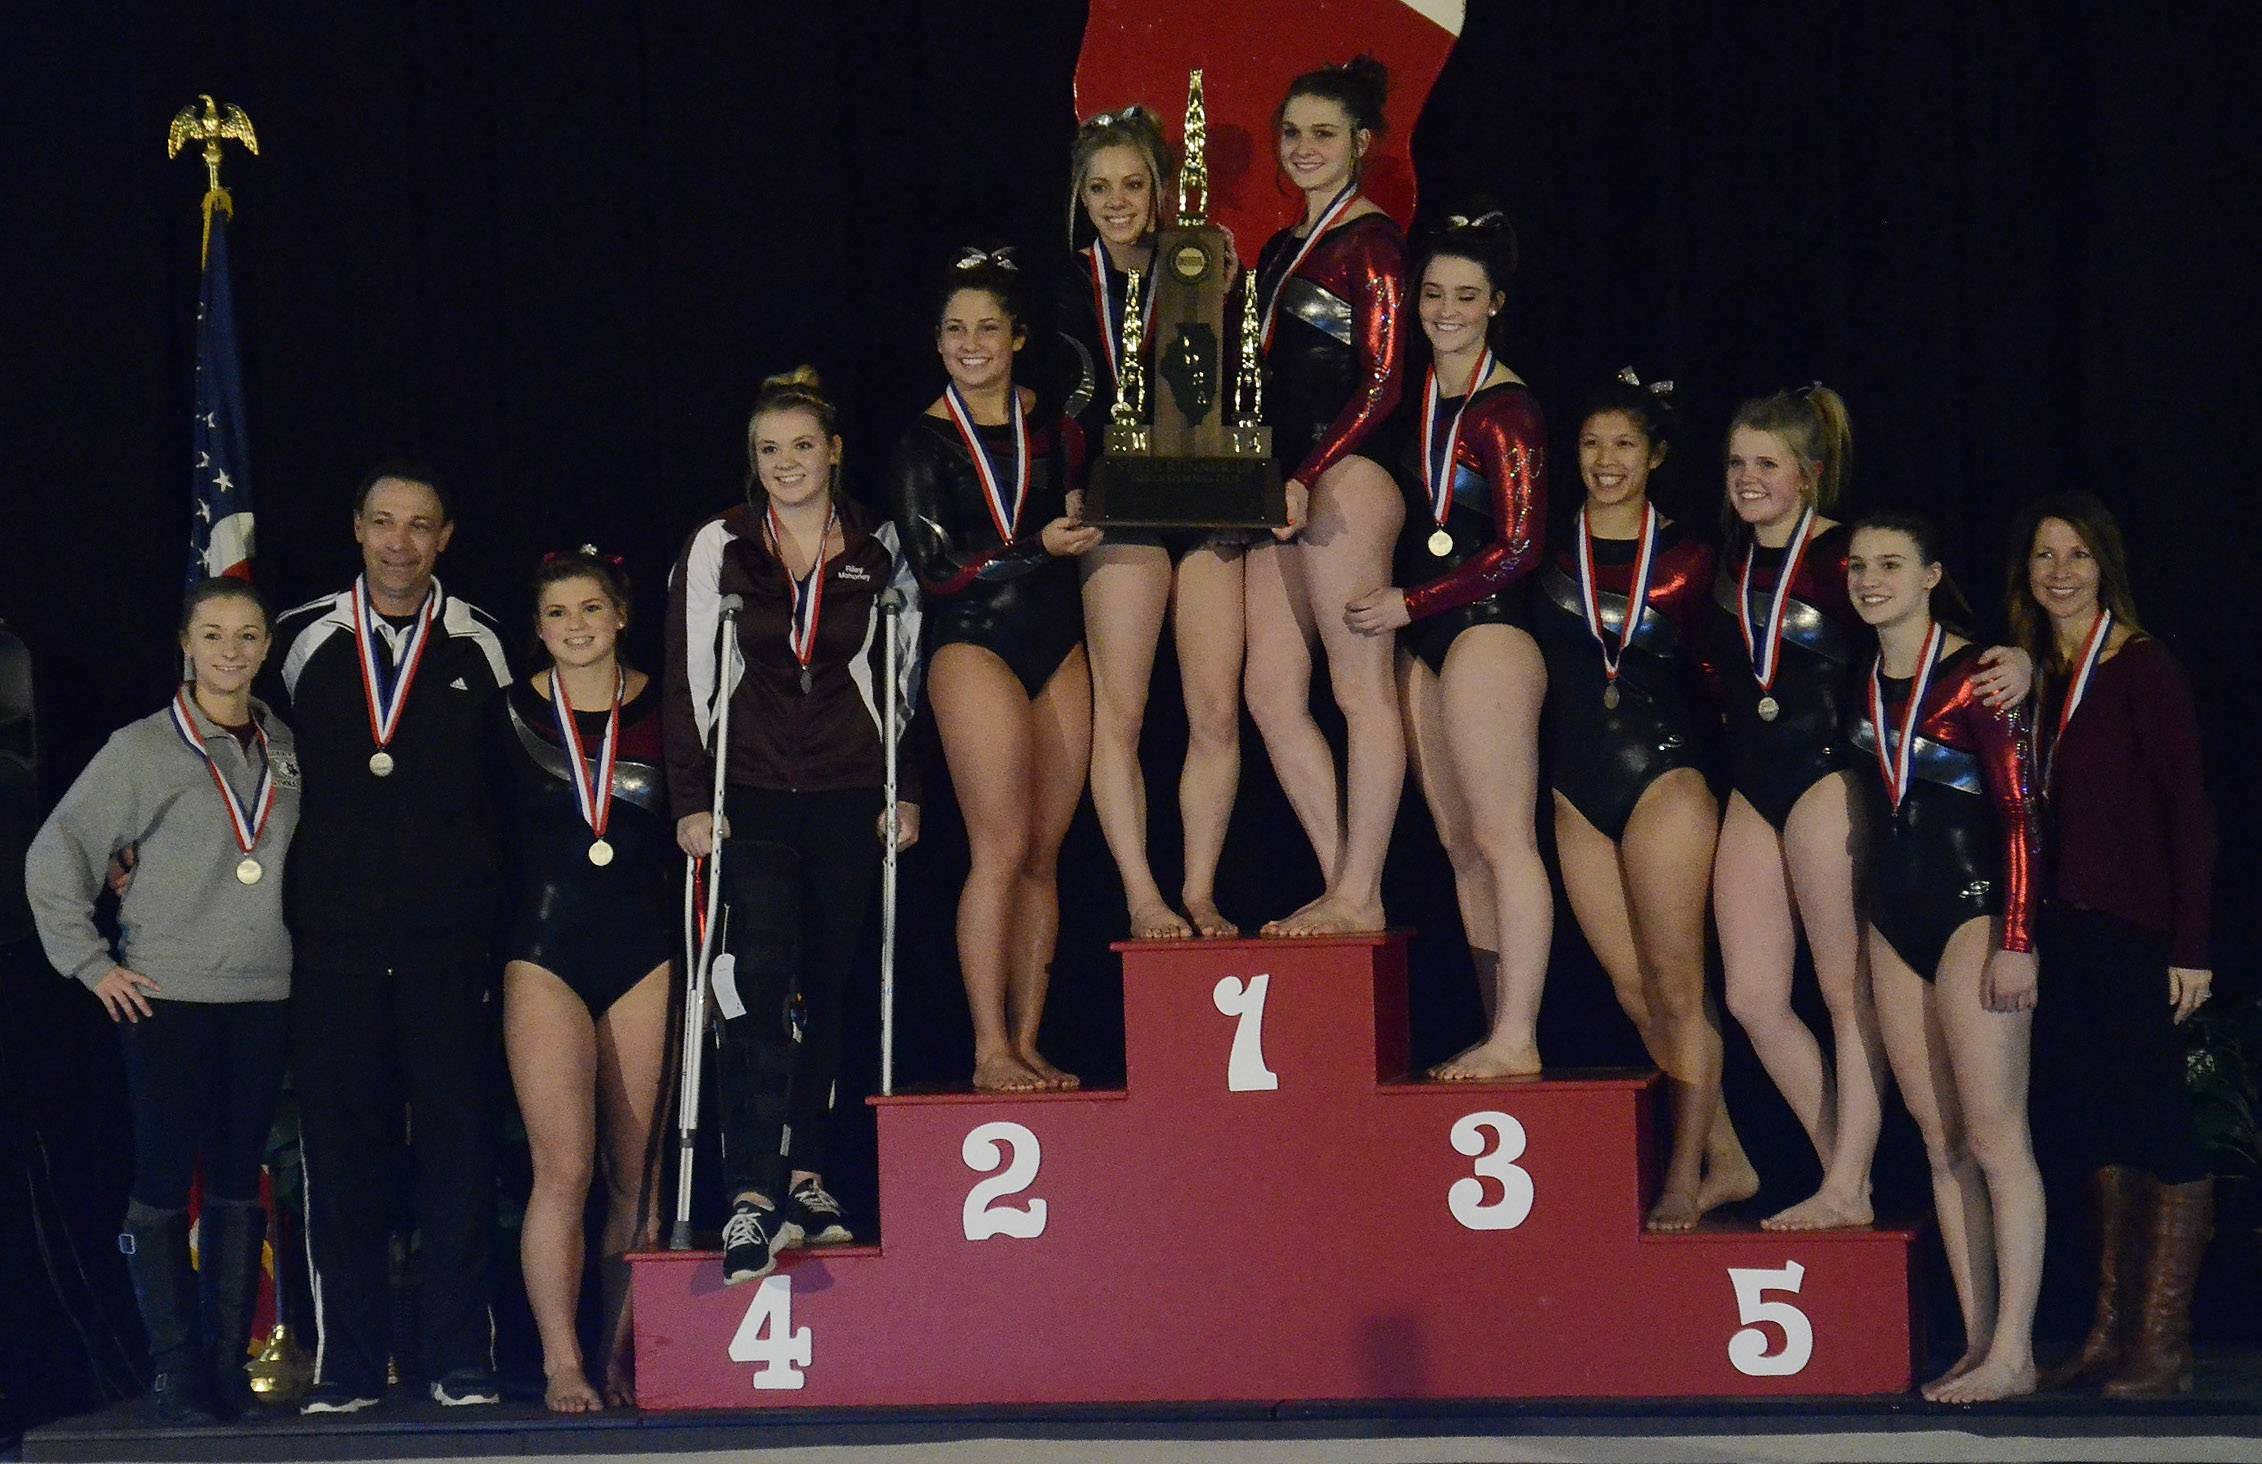 Prairie Ridge takes second in team standings at State Girls Gymnastics Saturday at Palatine High School.